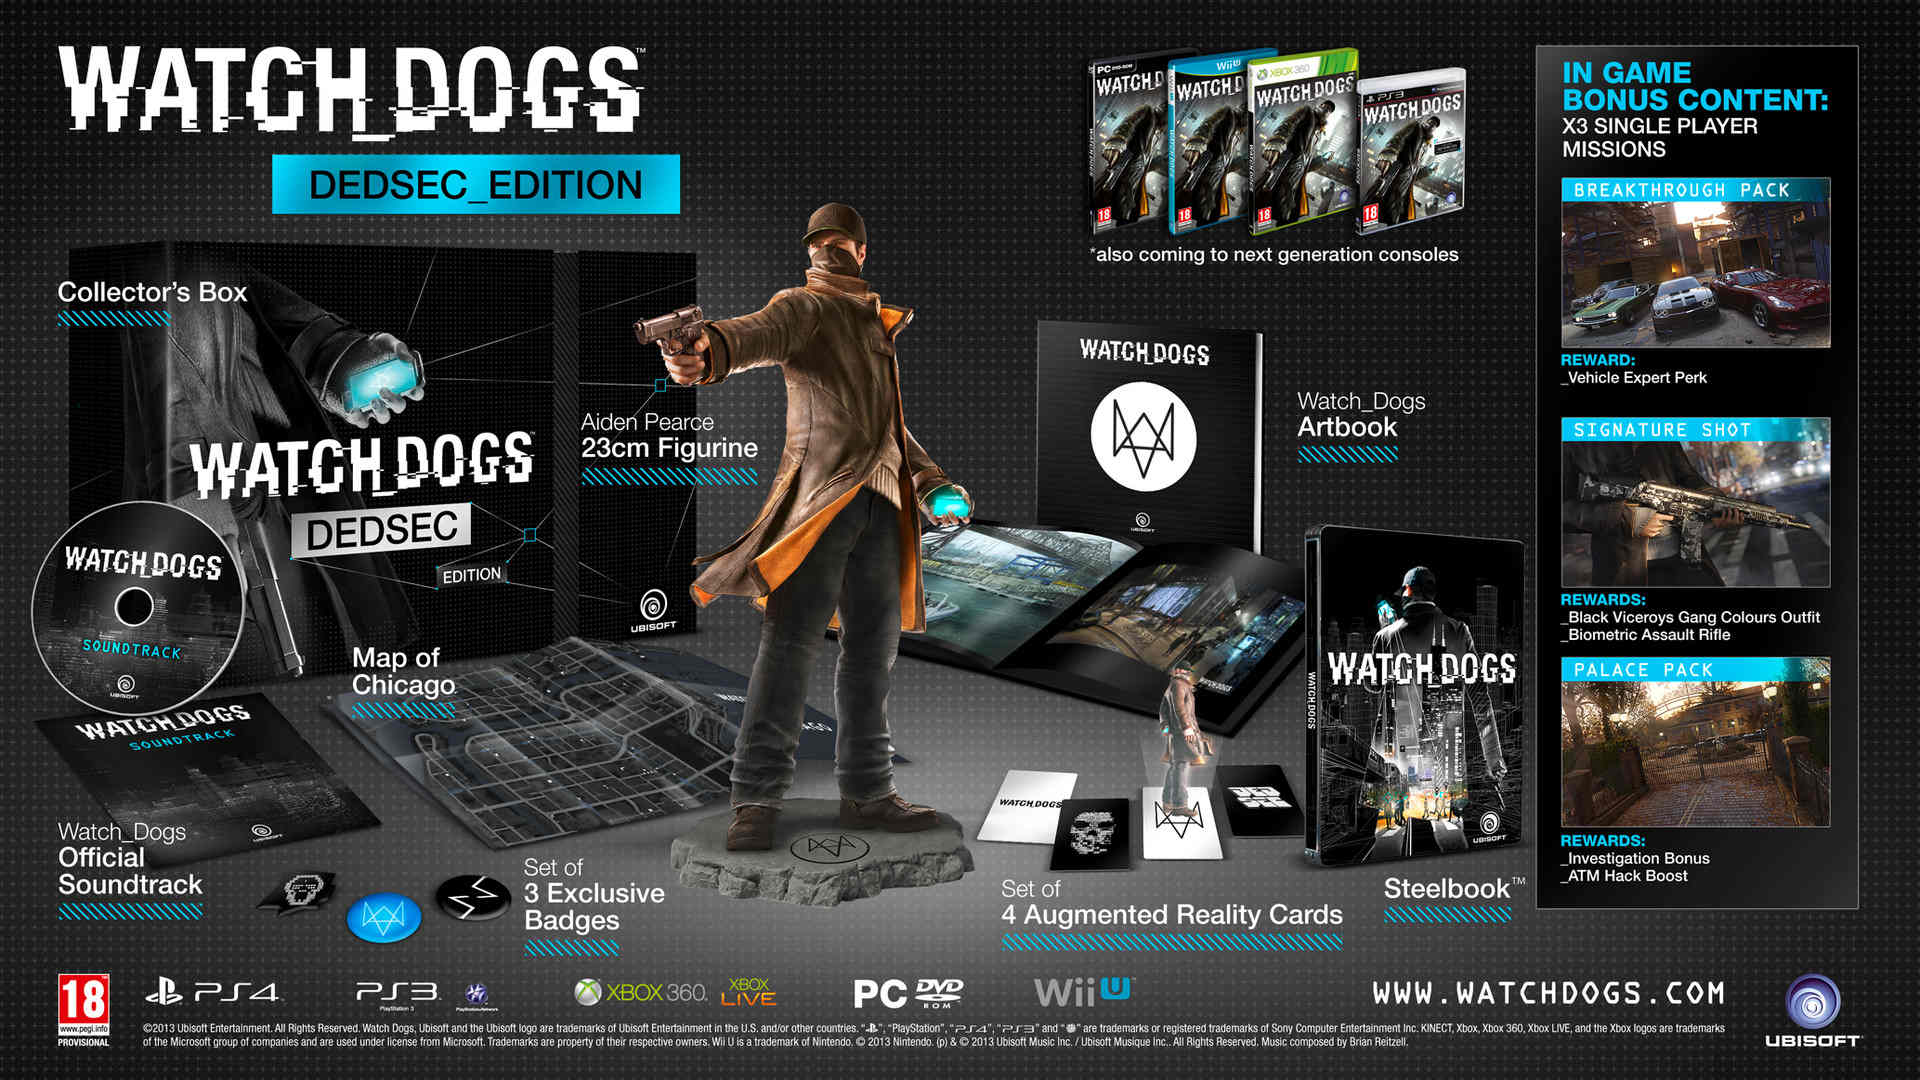 Commander Watch Dogs édition Dedsec